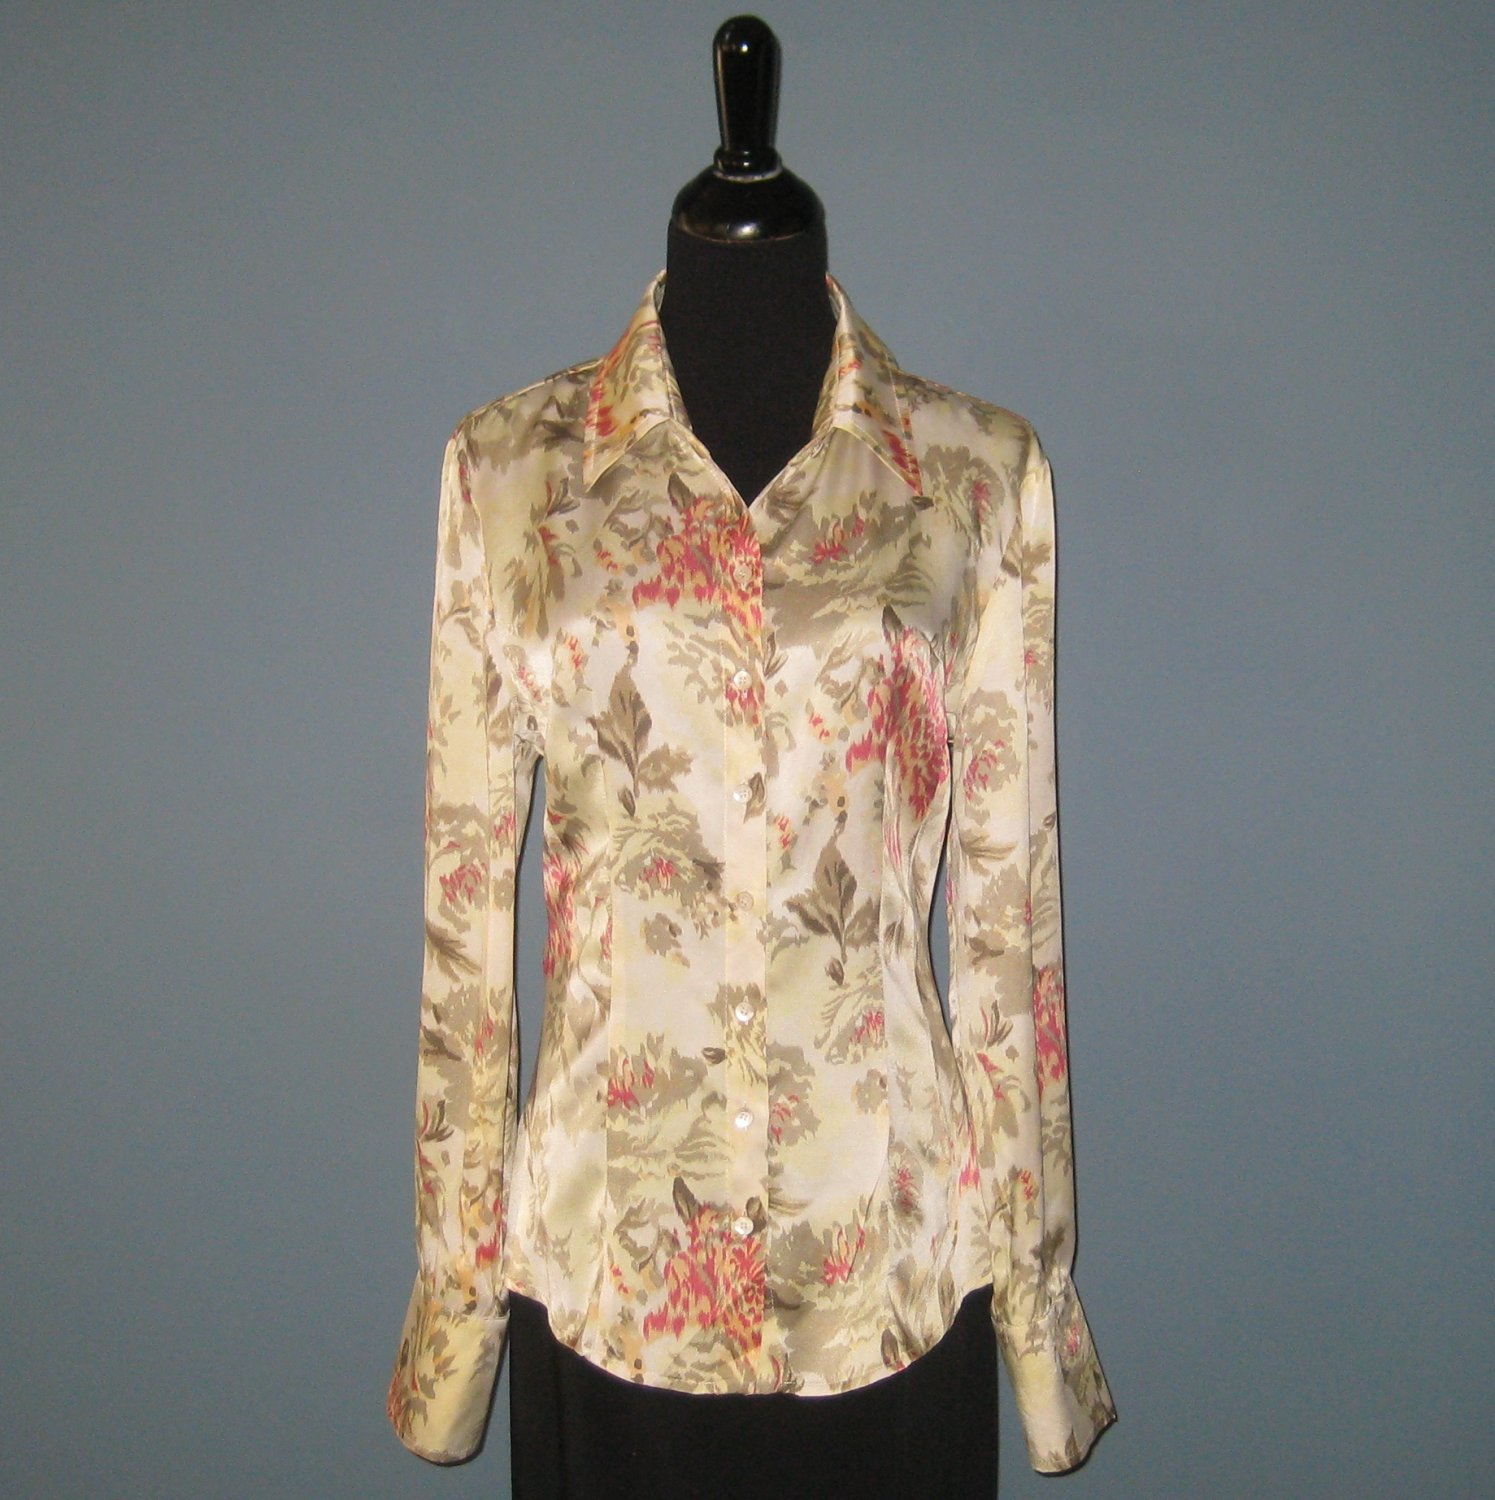 Pre-Owned Laurel 100% Silk Pale Green & Multi Floral Blouse - 40